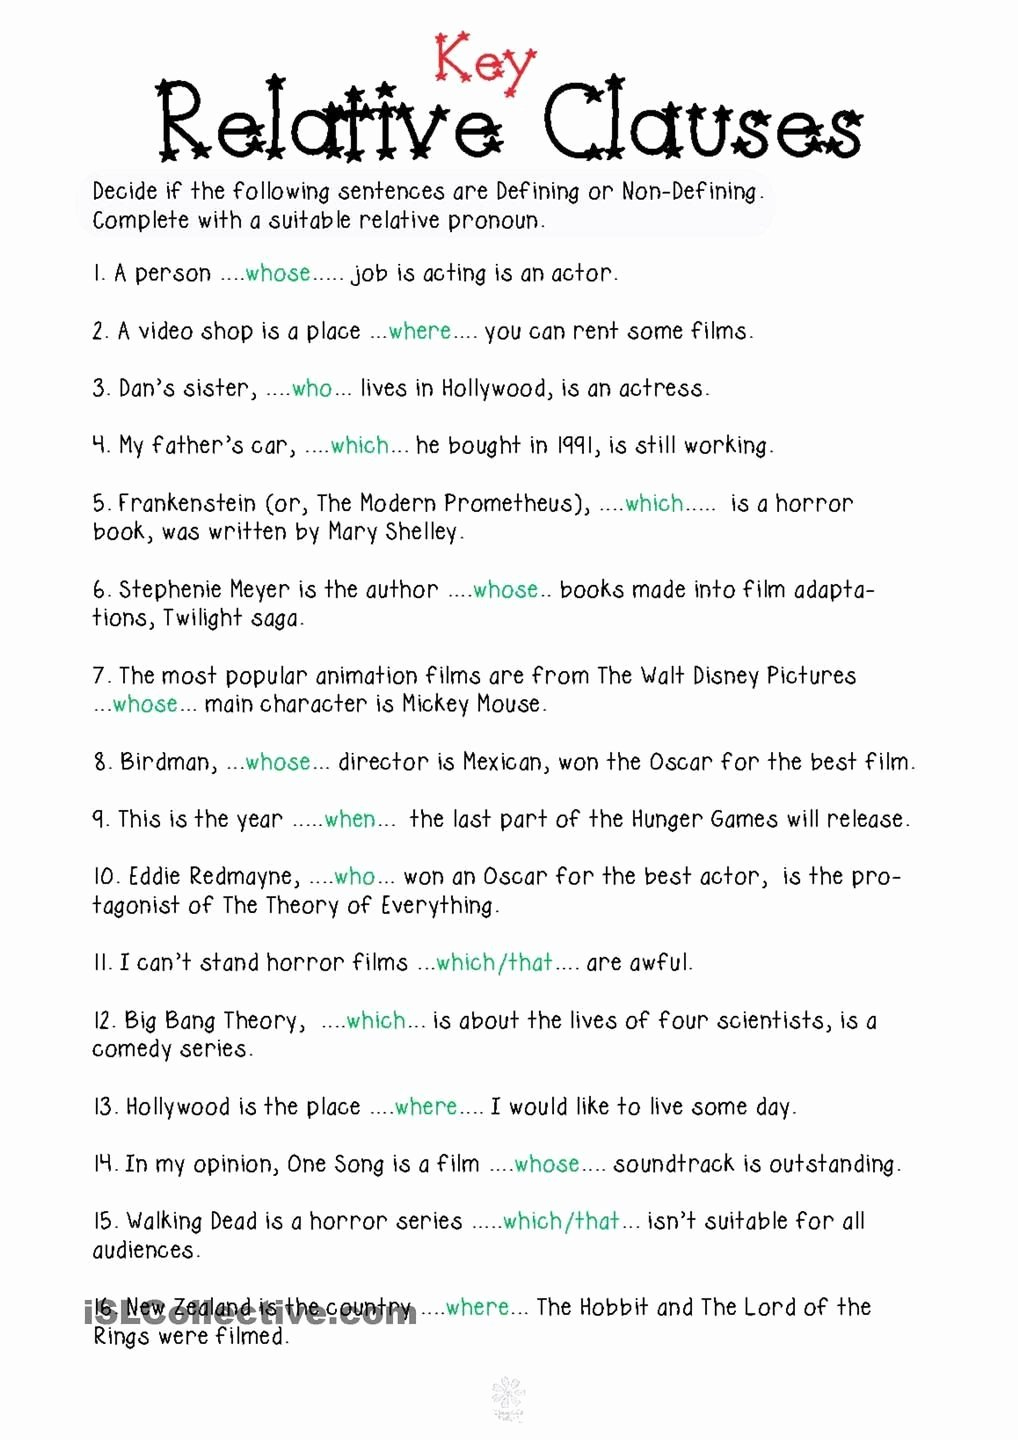 Relative Pronouns Worksheets 4th Grade Lovely Relative Pronouns Worksheet Grade 4 Relative Clauses In 2020